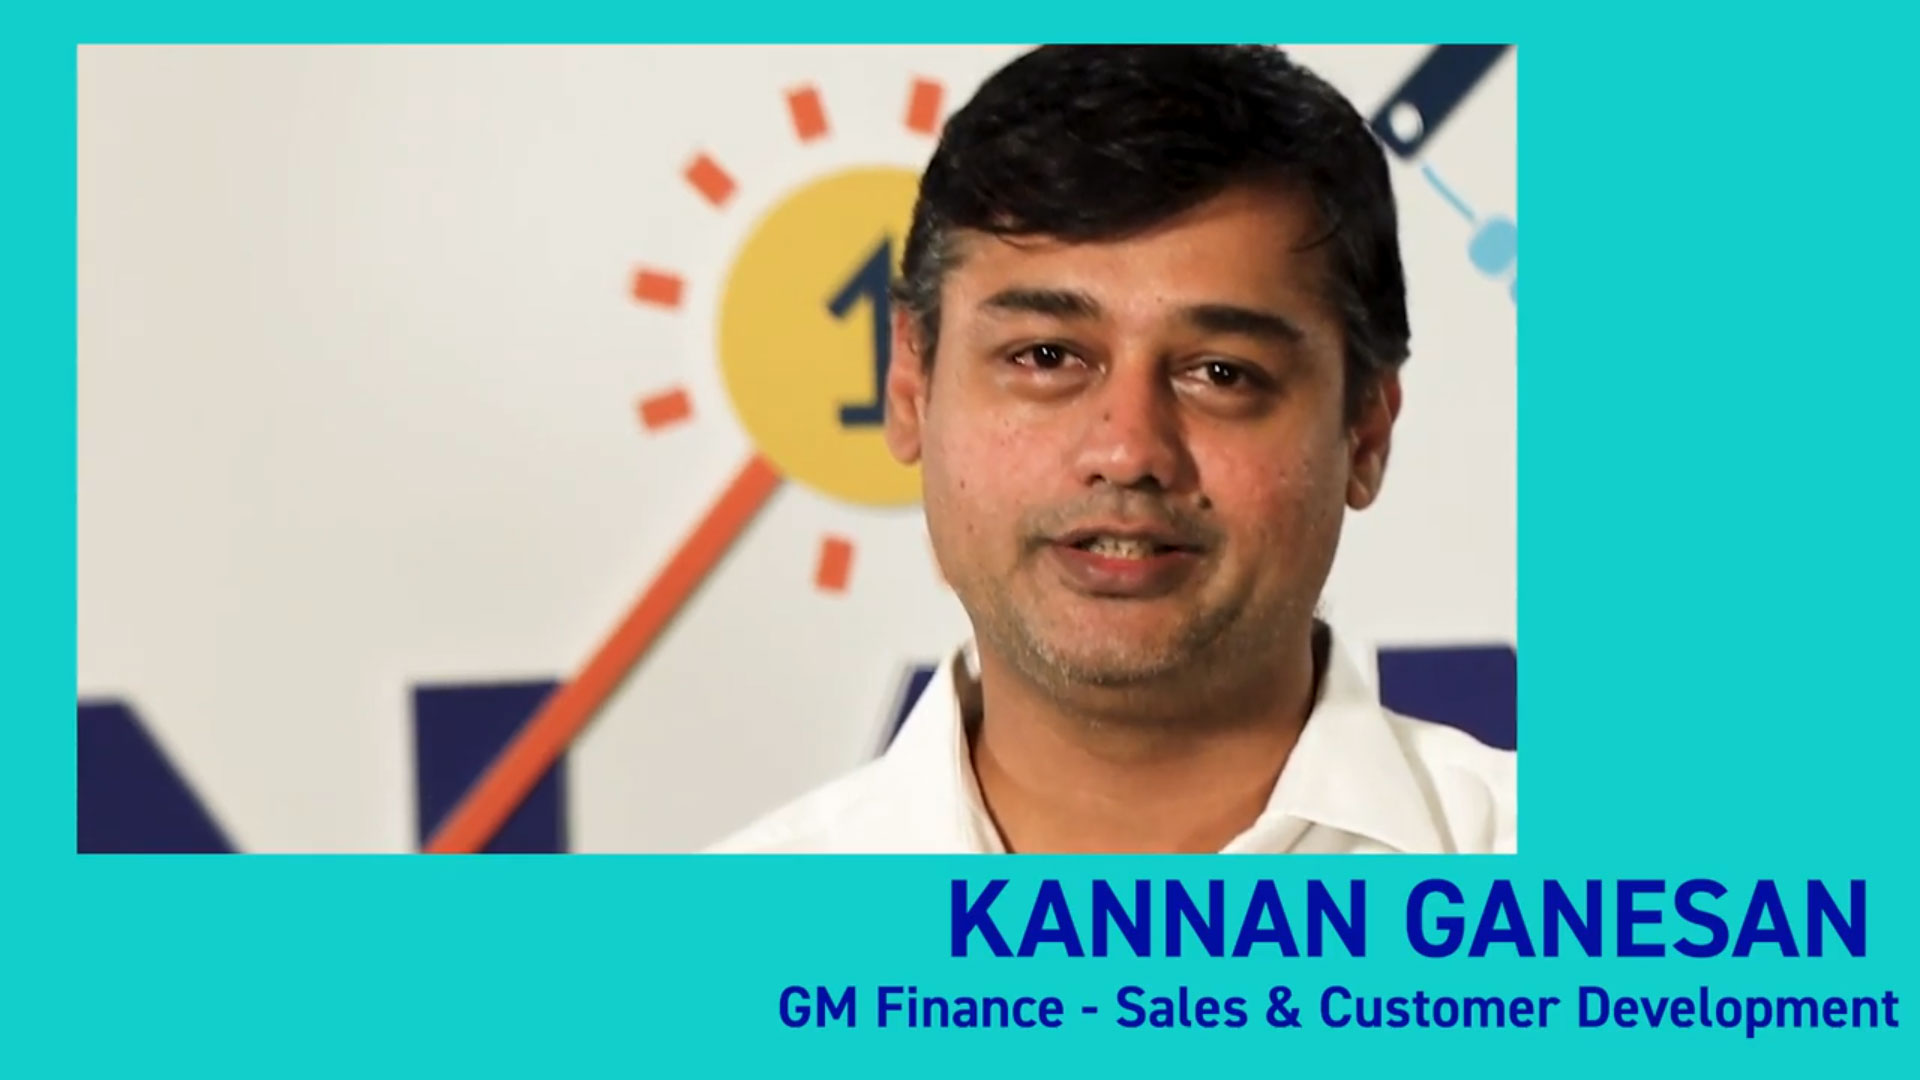 Kannan Ganesan GM Finance - Sales & Customer Development